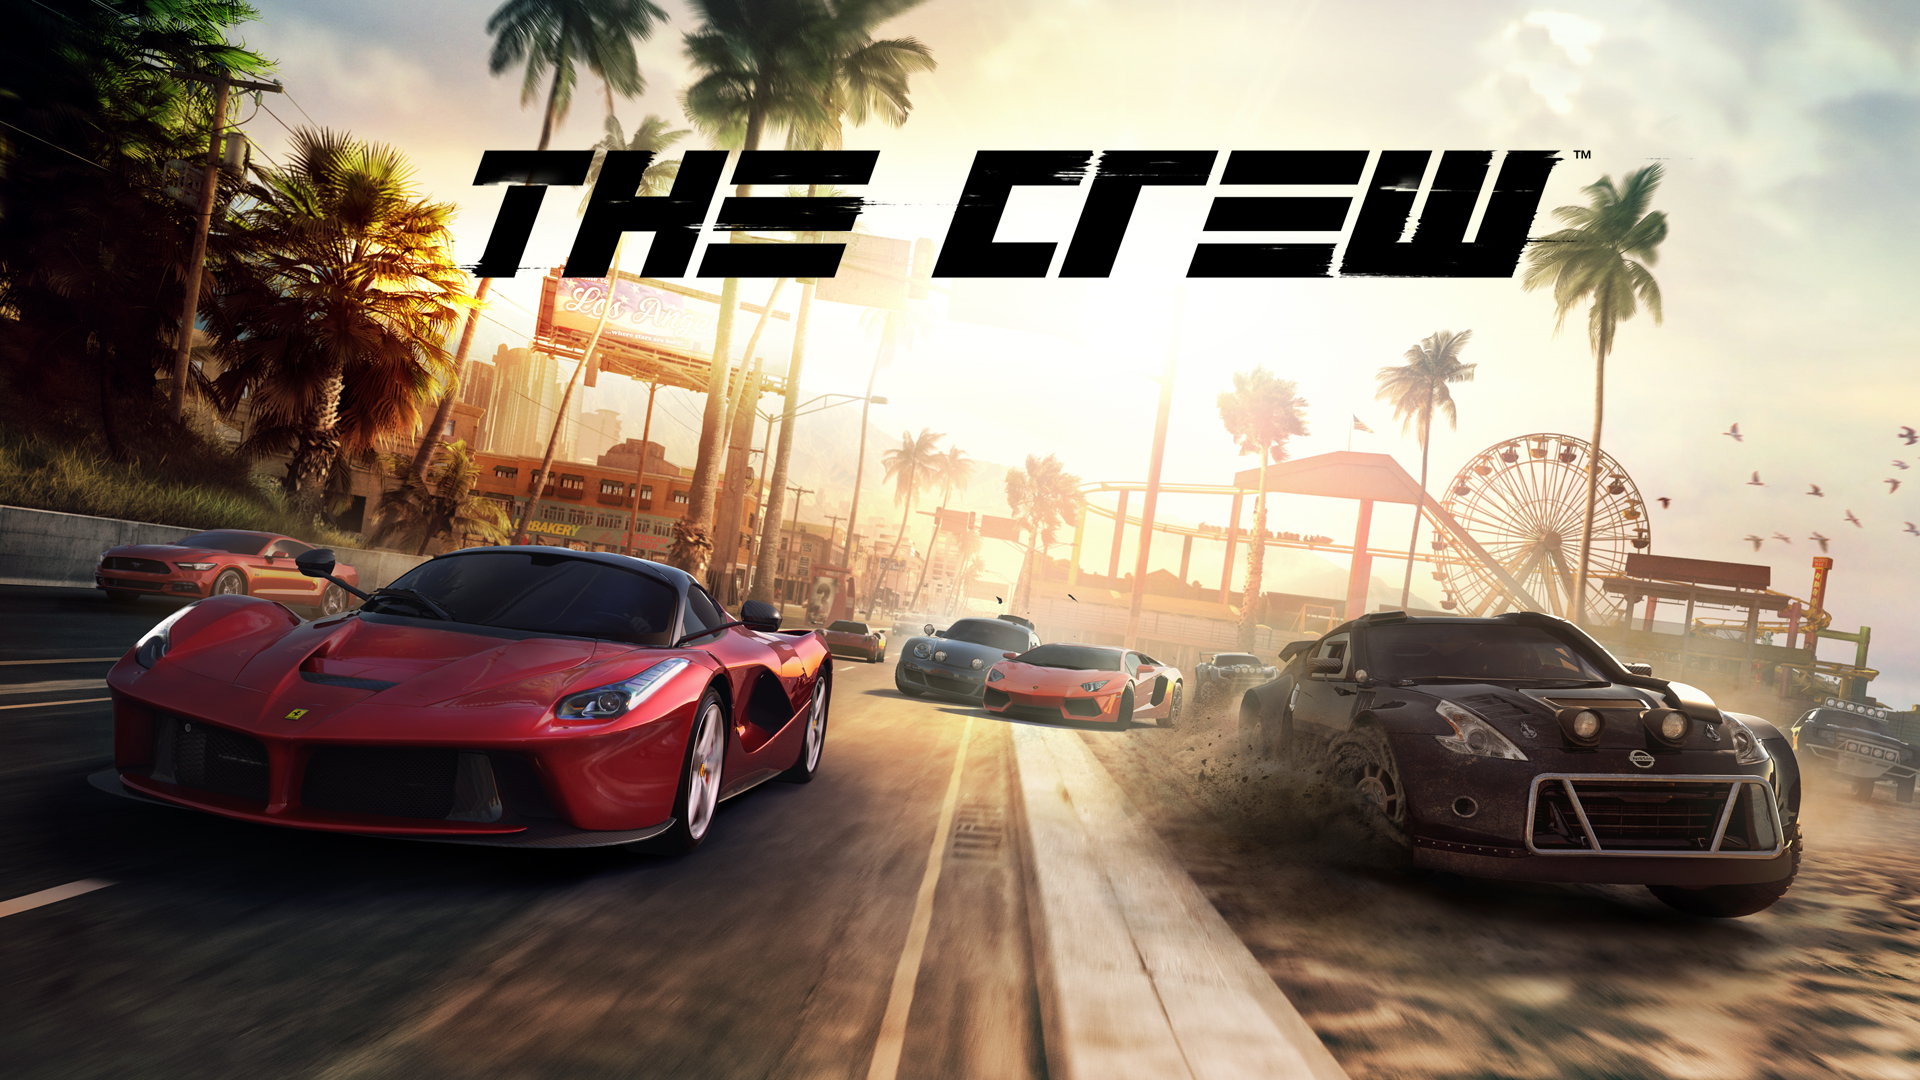 The Crew - E3 2014 Key Art